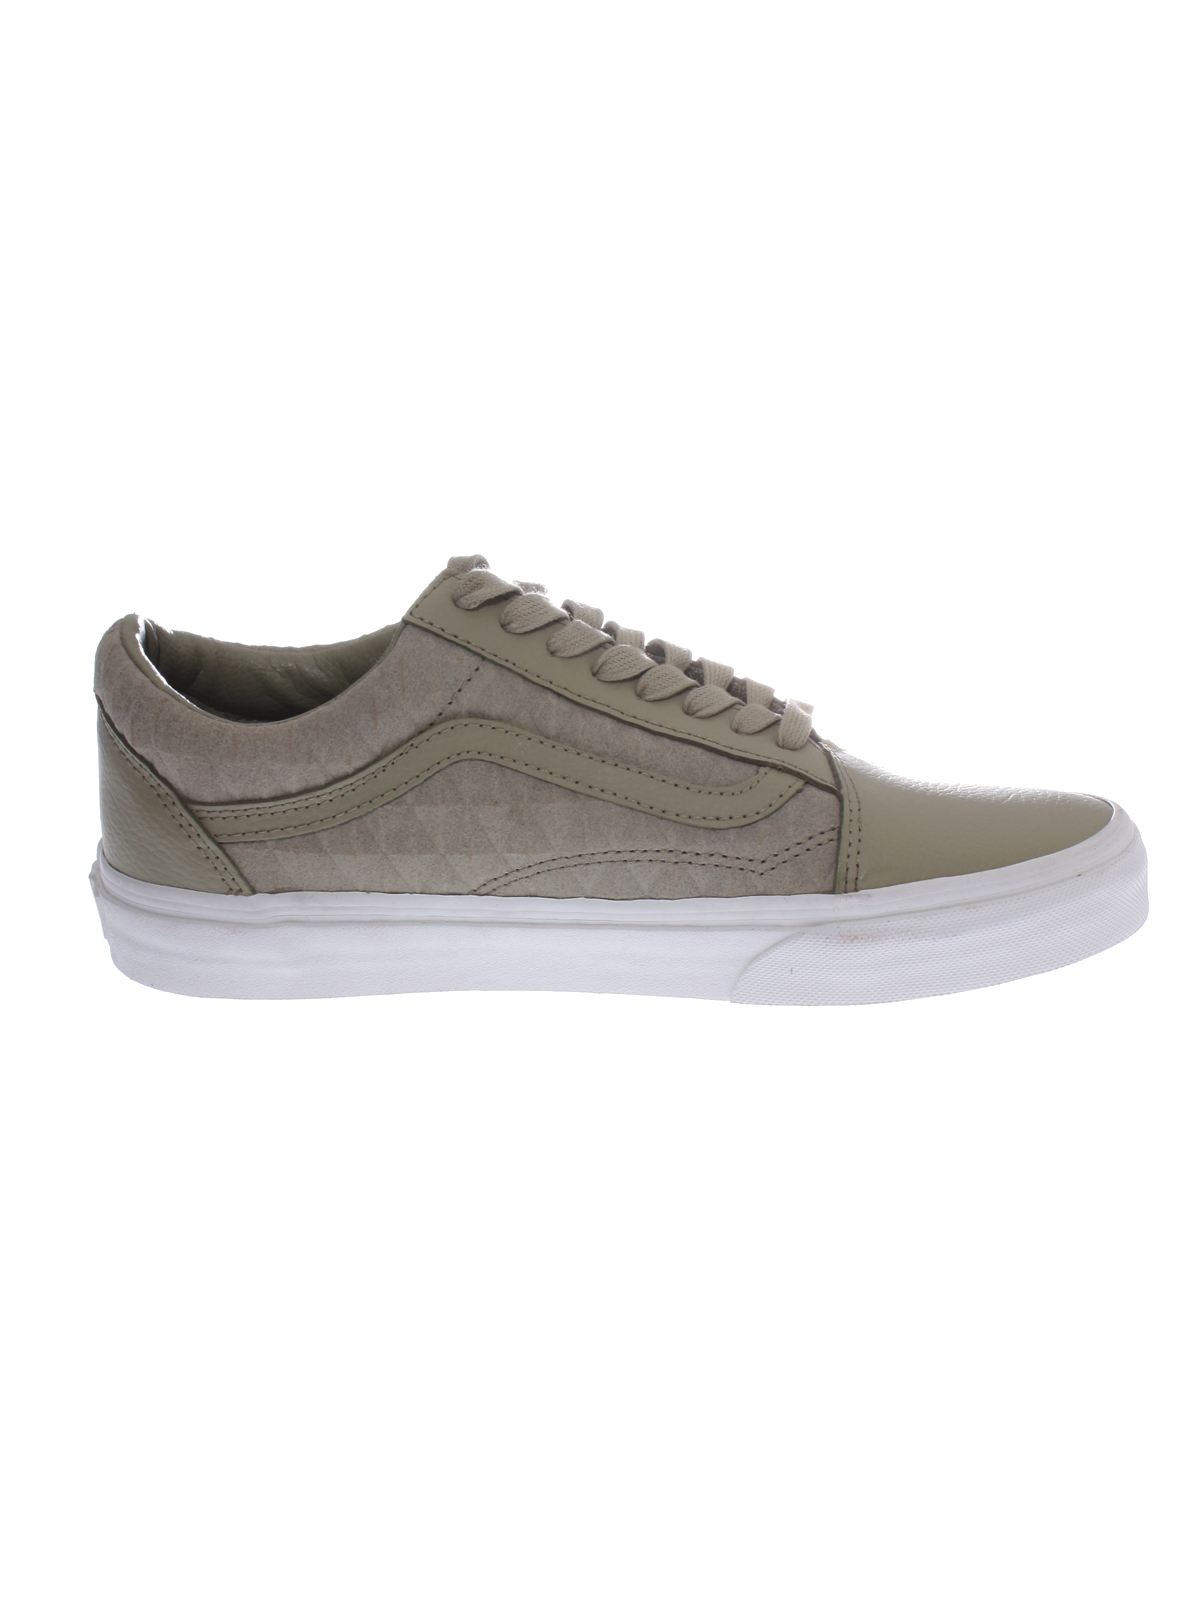 Vans herren schuhe sneaker leder old skool classics suede for Old skool house classics